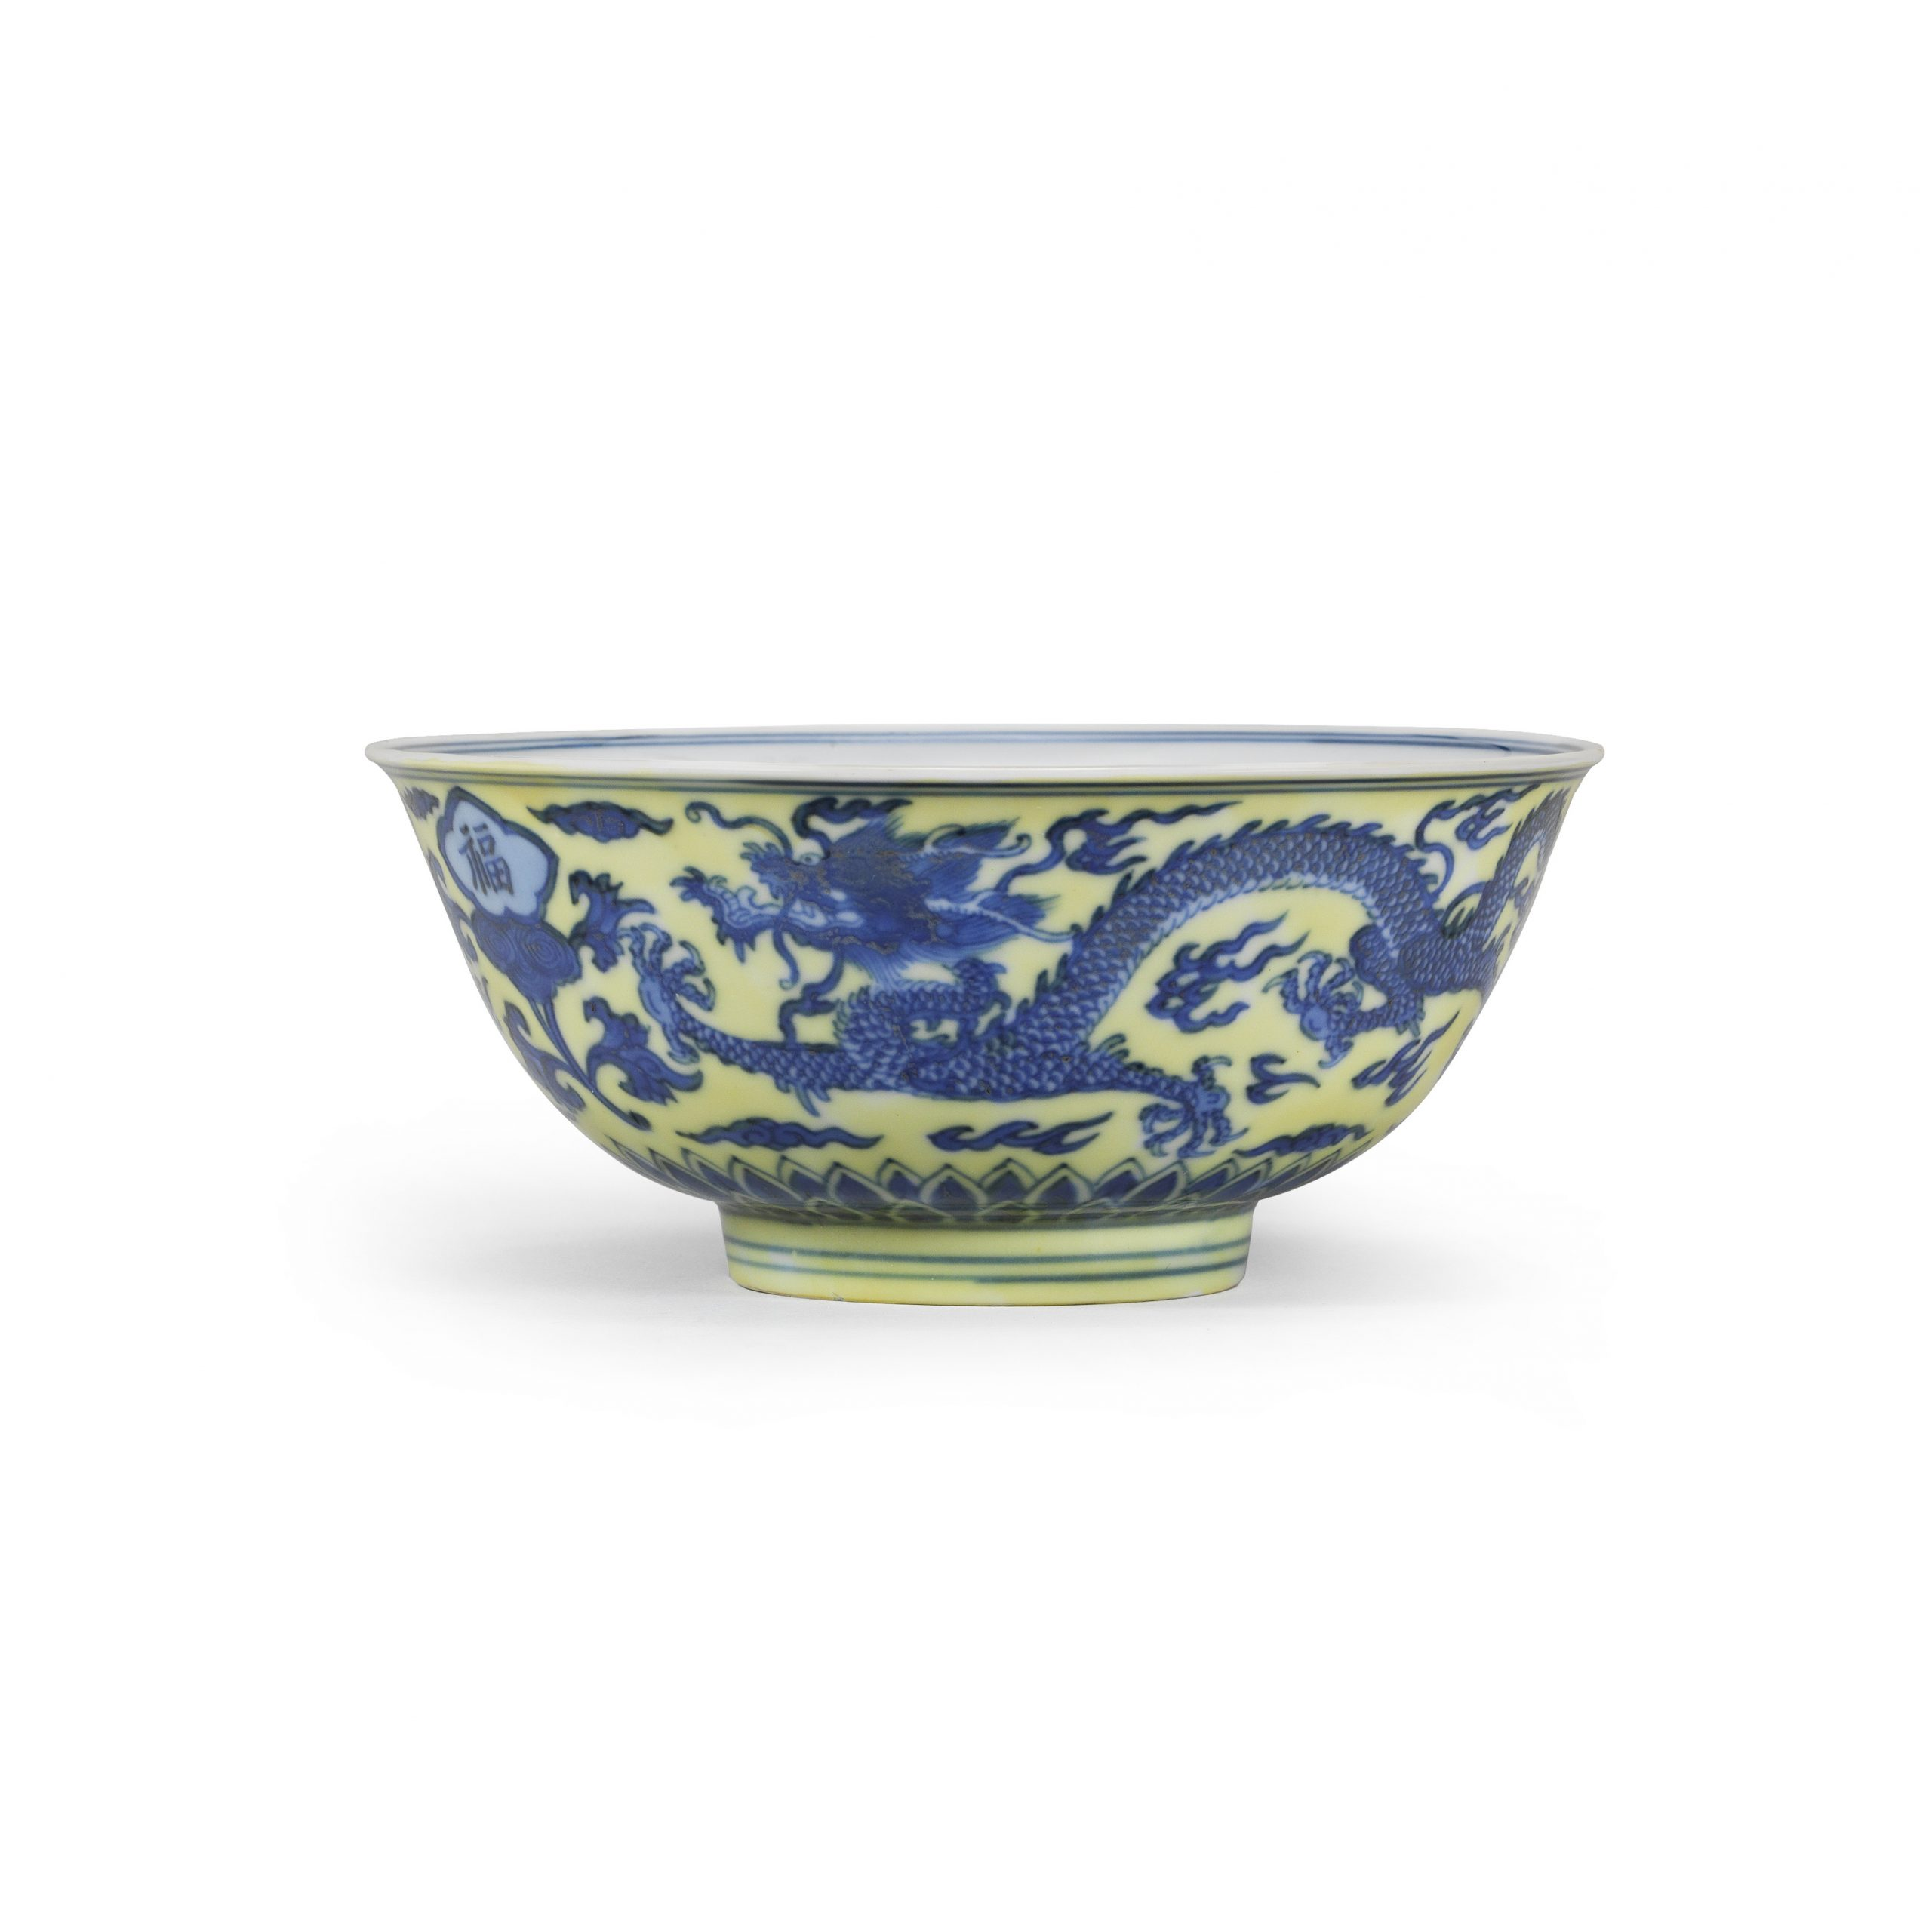 A rare and fine yellow-ground blue and white 'dragon and ruyi' bowl, Kangxi six-character mark and of he period - Roger Keverne Ltd. Moving on.